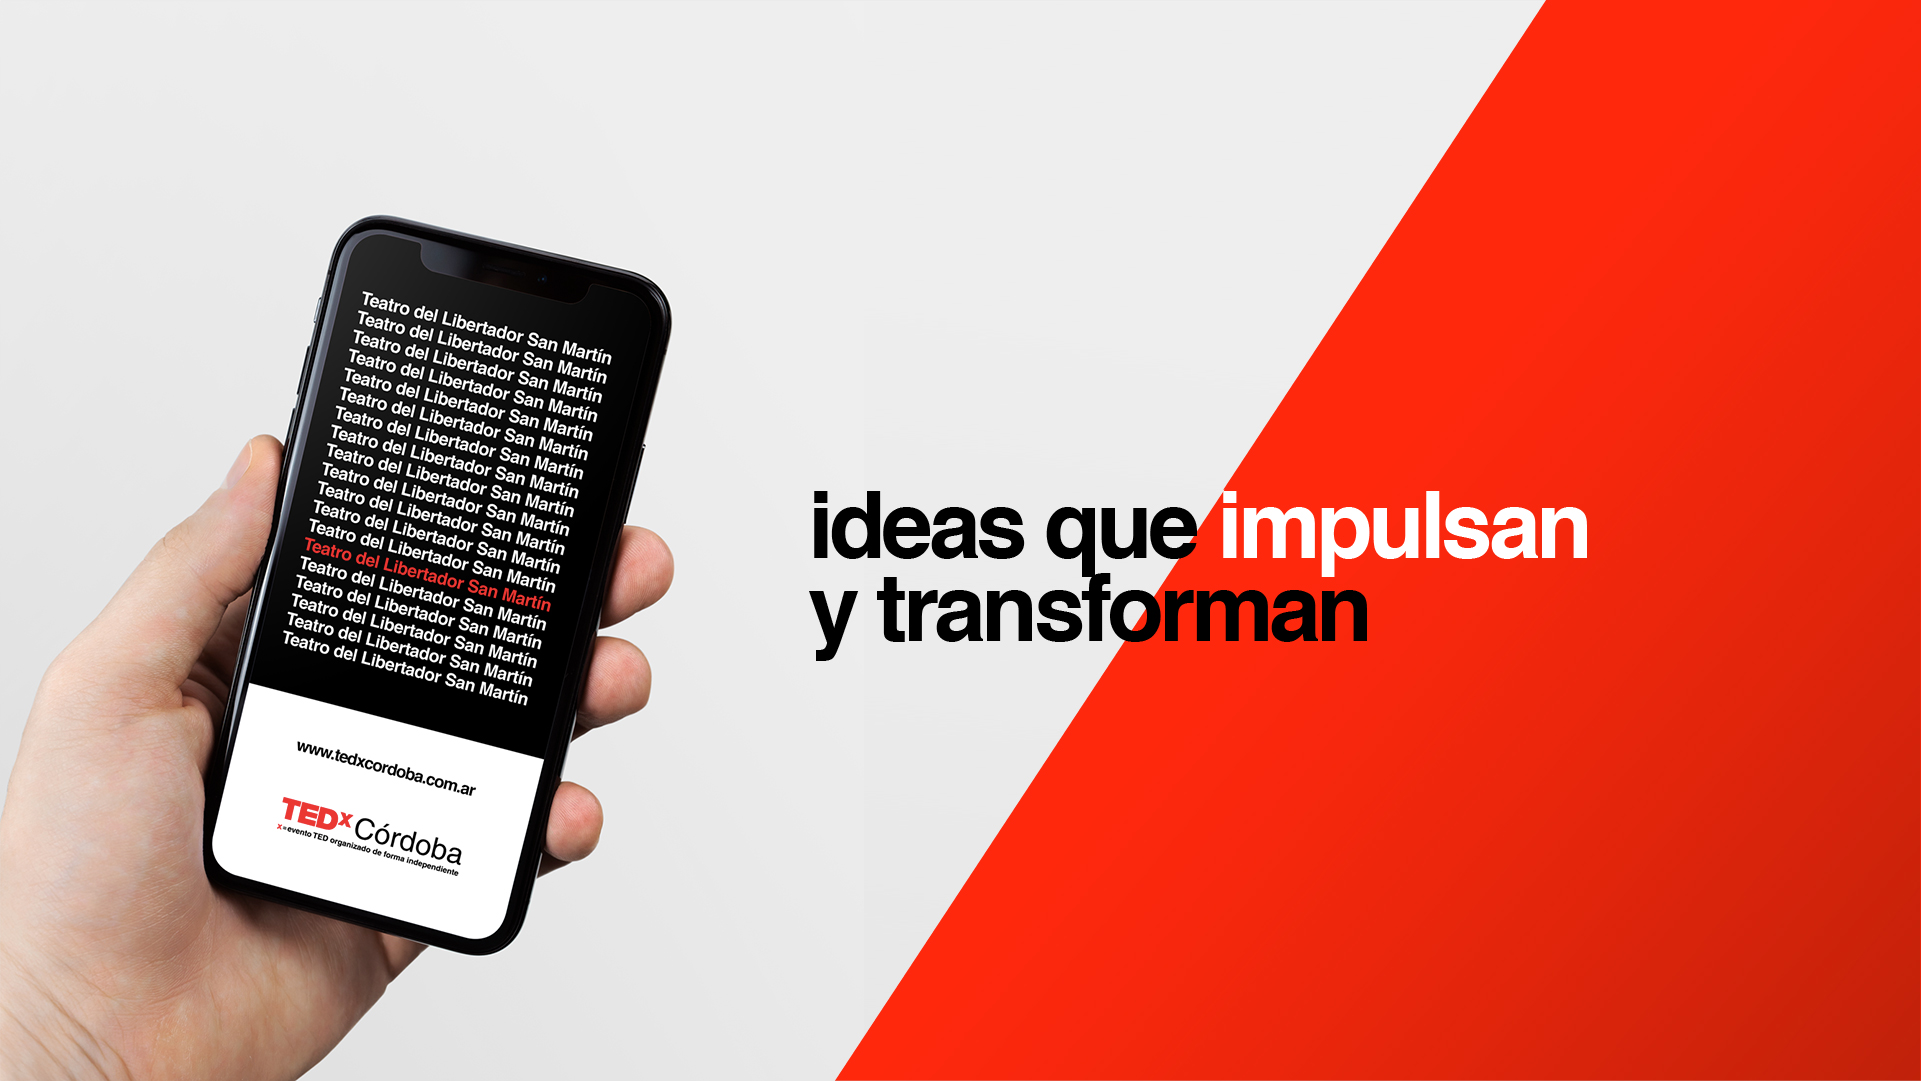 ideas que impulsan y transforman